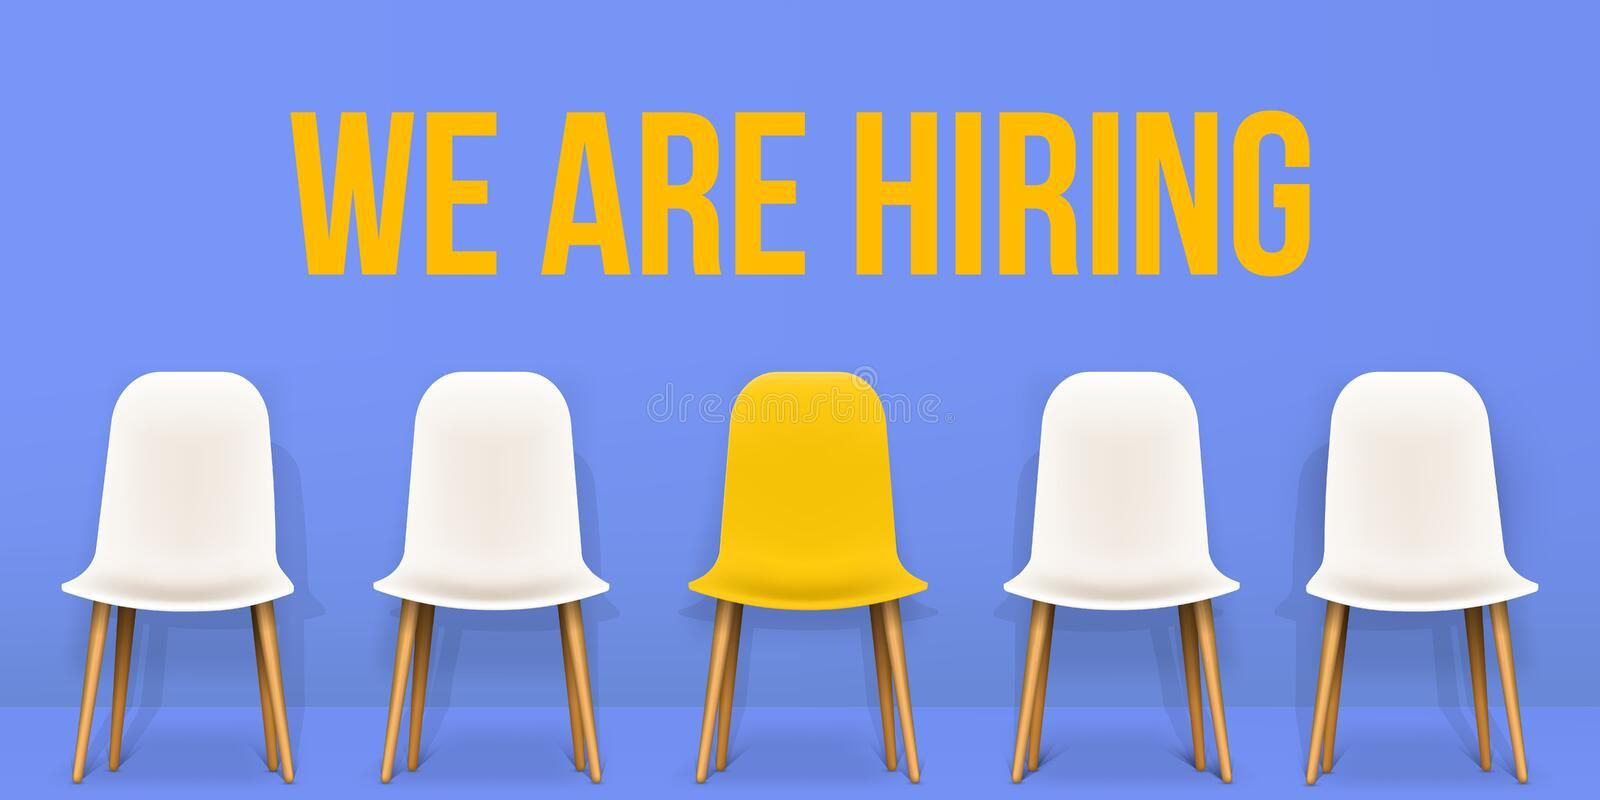 Creative vector illustration of we are hiring - recruiting concept, resources job employment career jobless interview. Chairs isolated on background. Art vector illustration